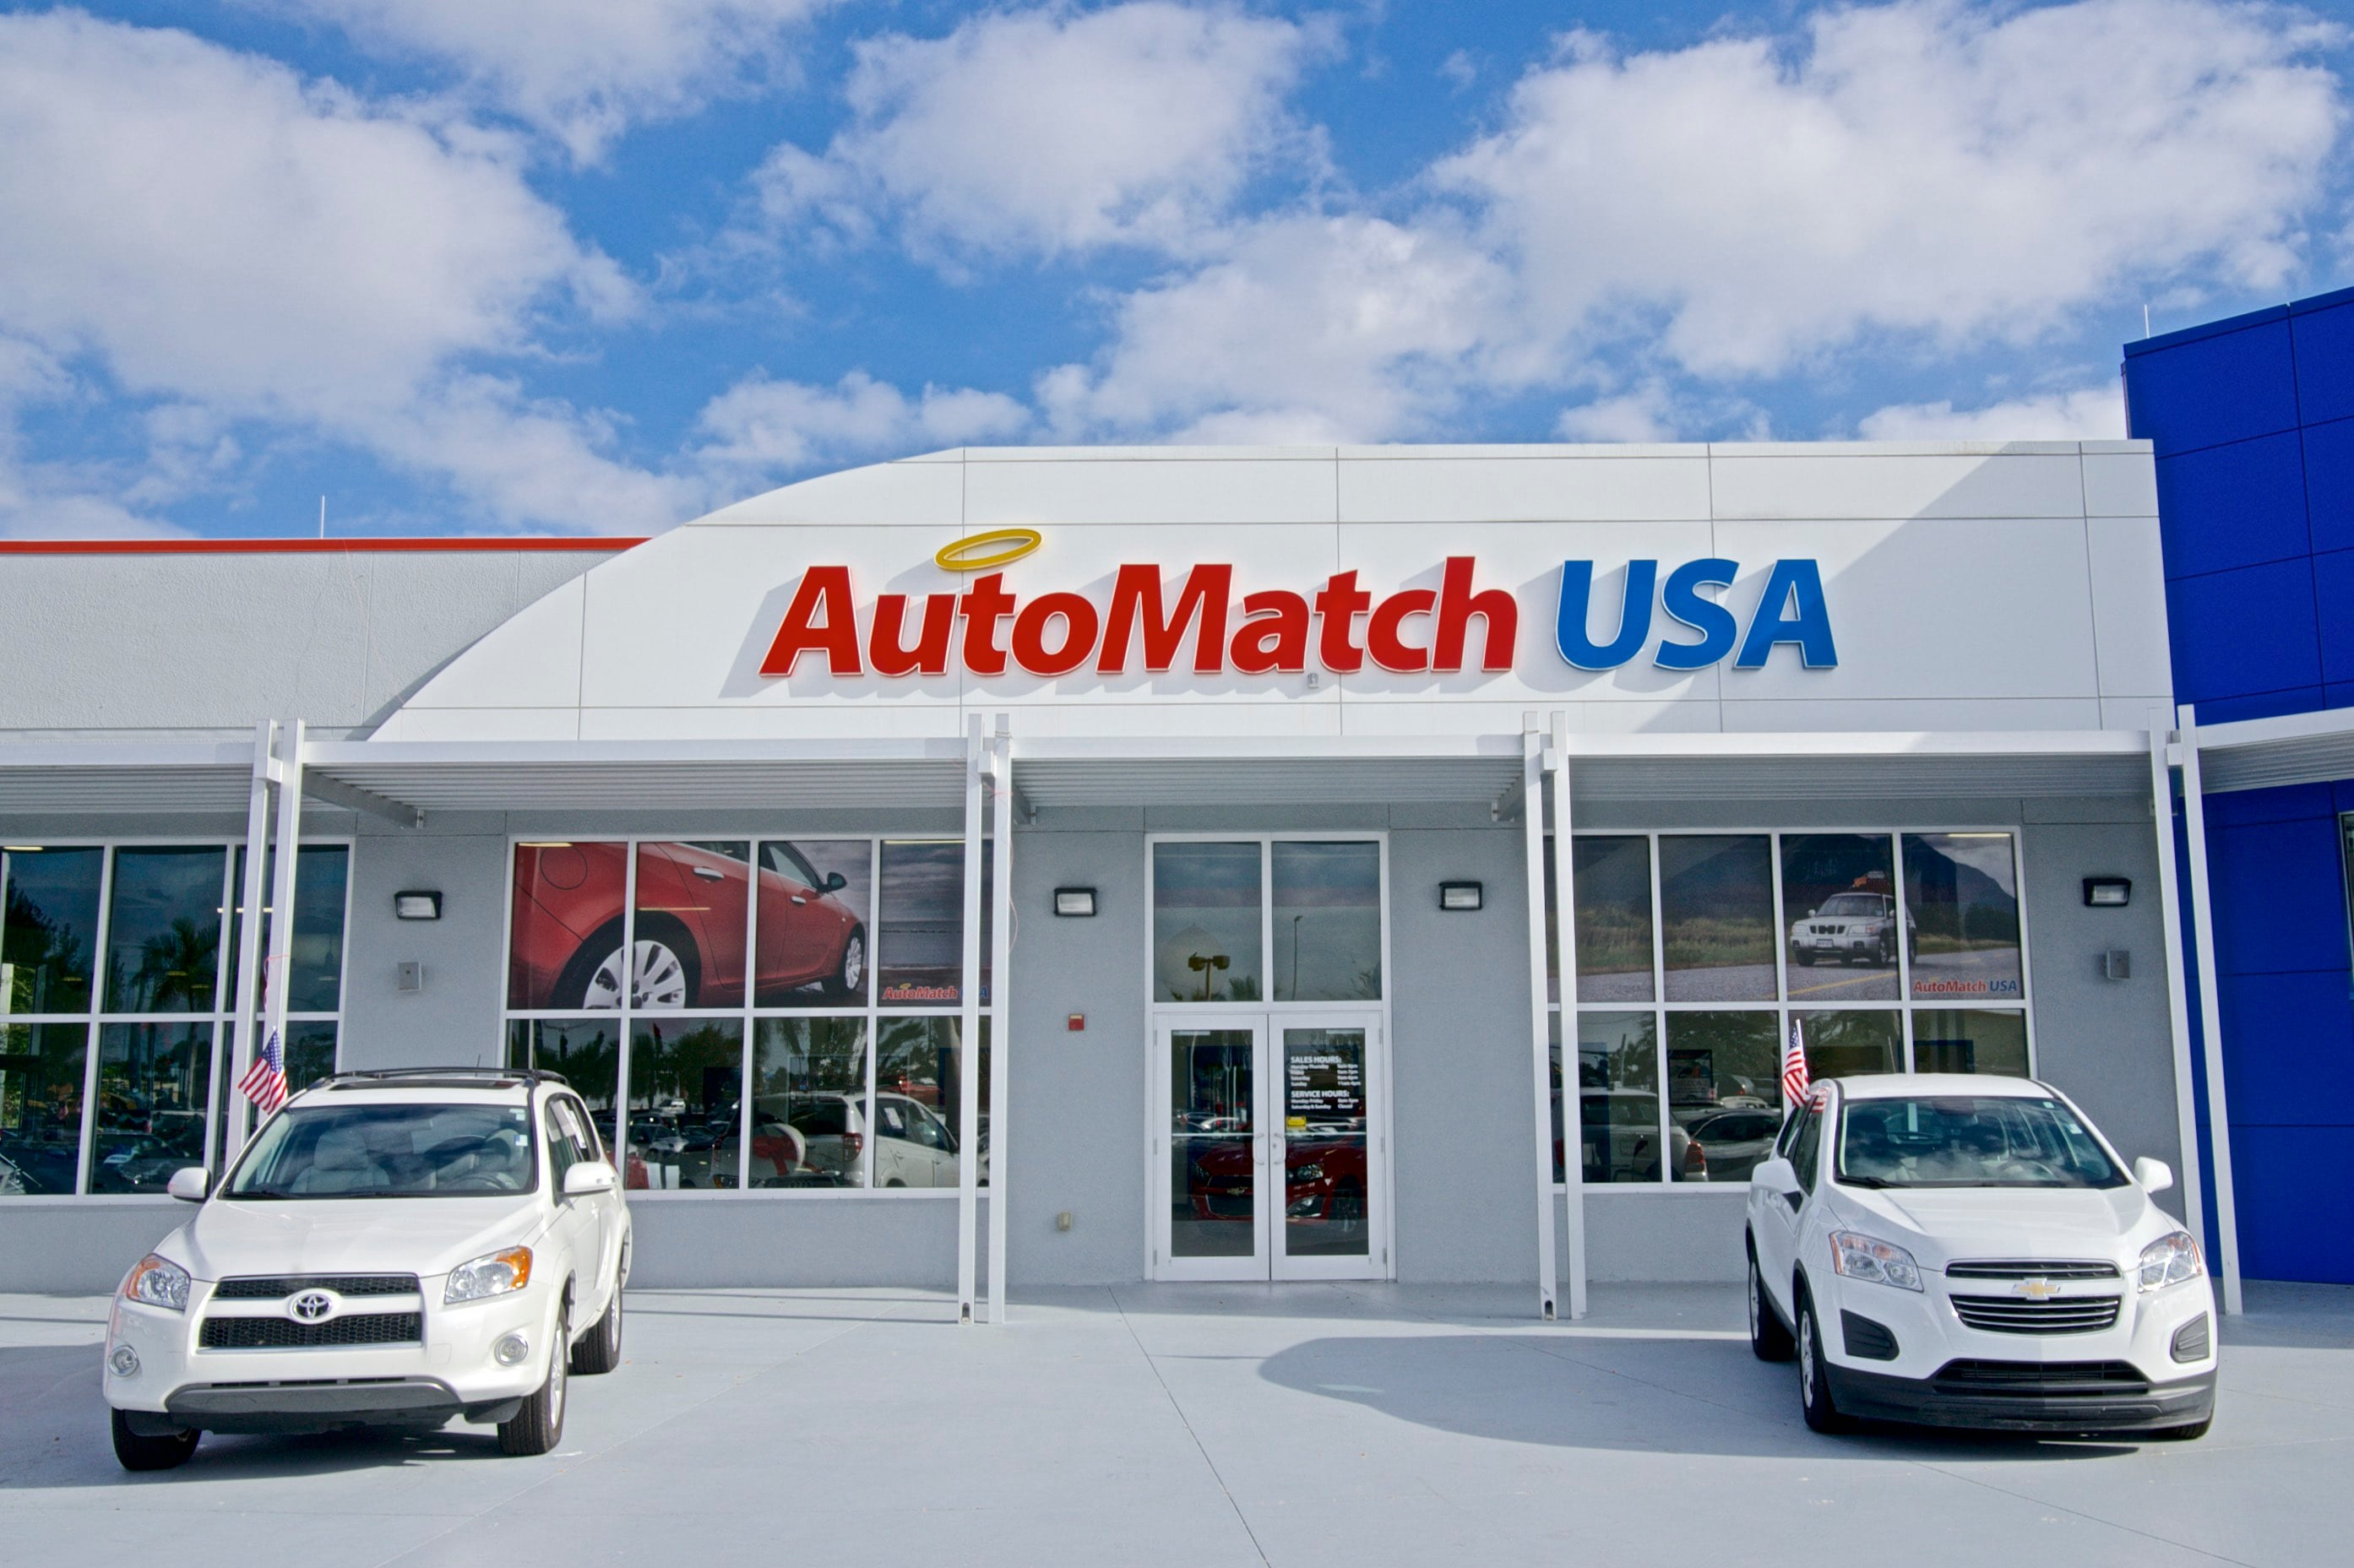 used car dealer jacksonville automatch usa automatch usa hosts 5k run to benefit golisano children s hospital